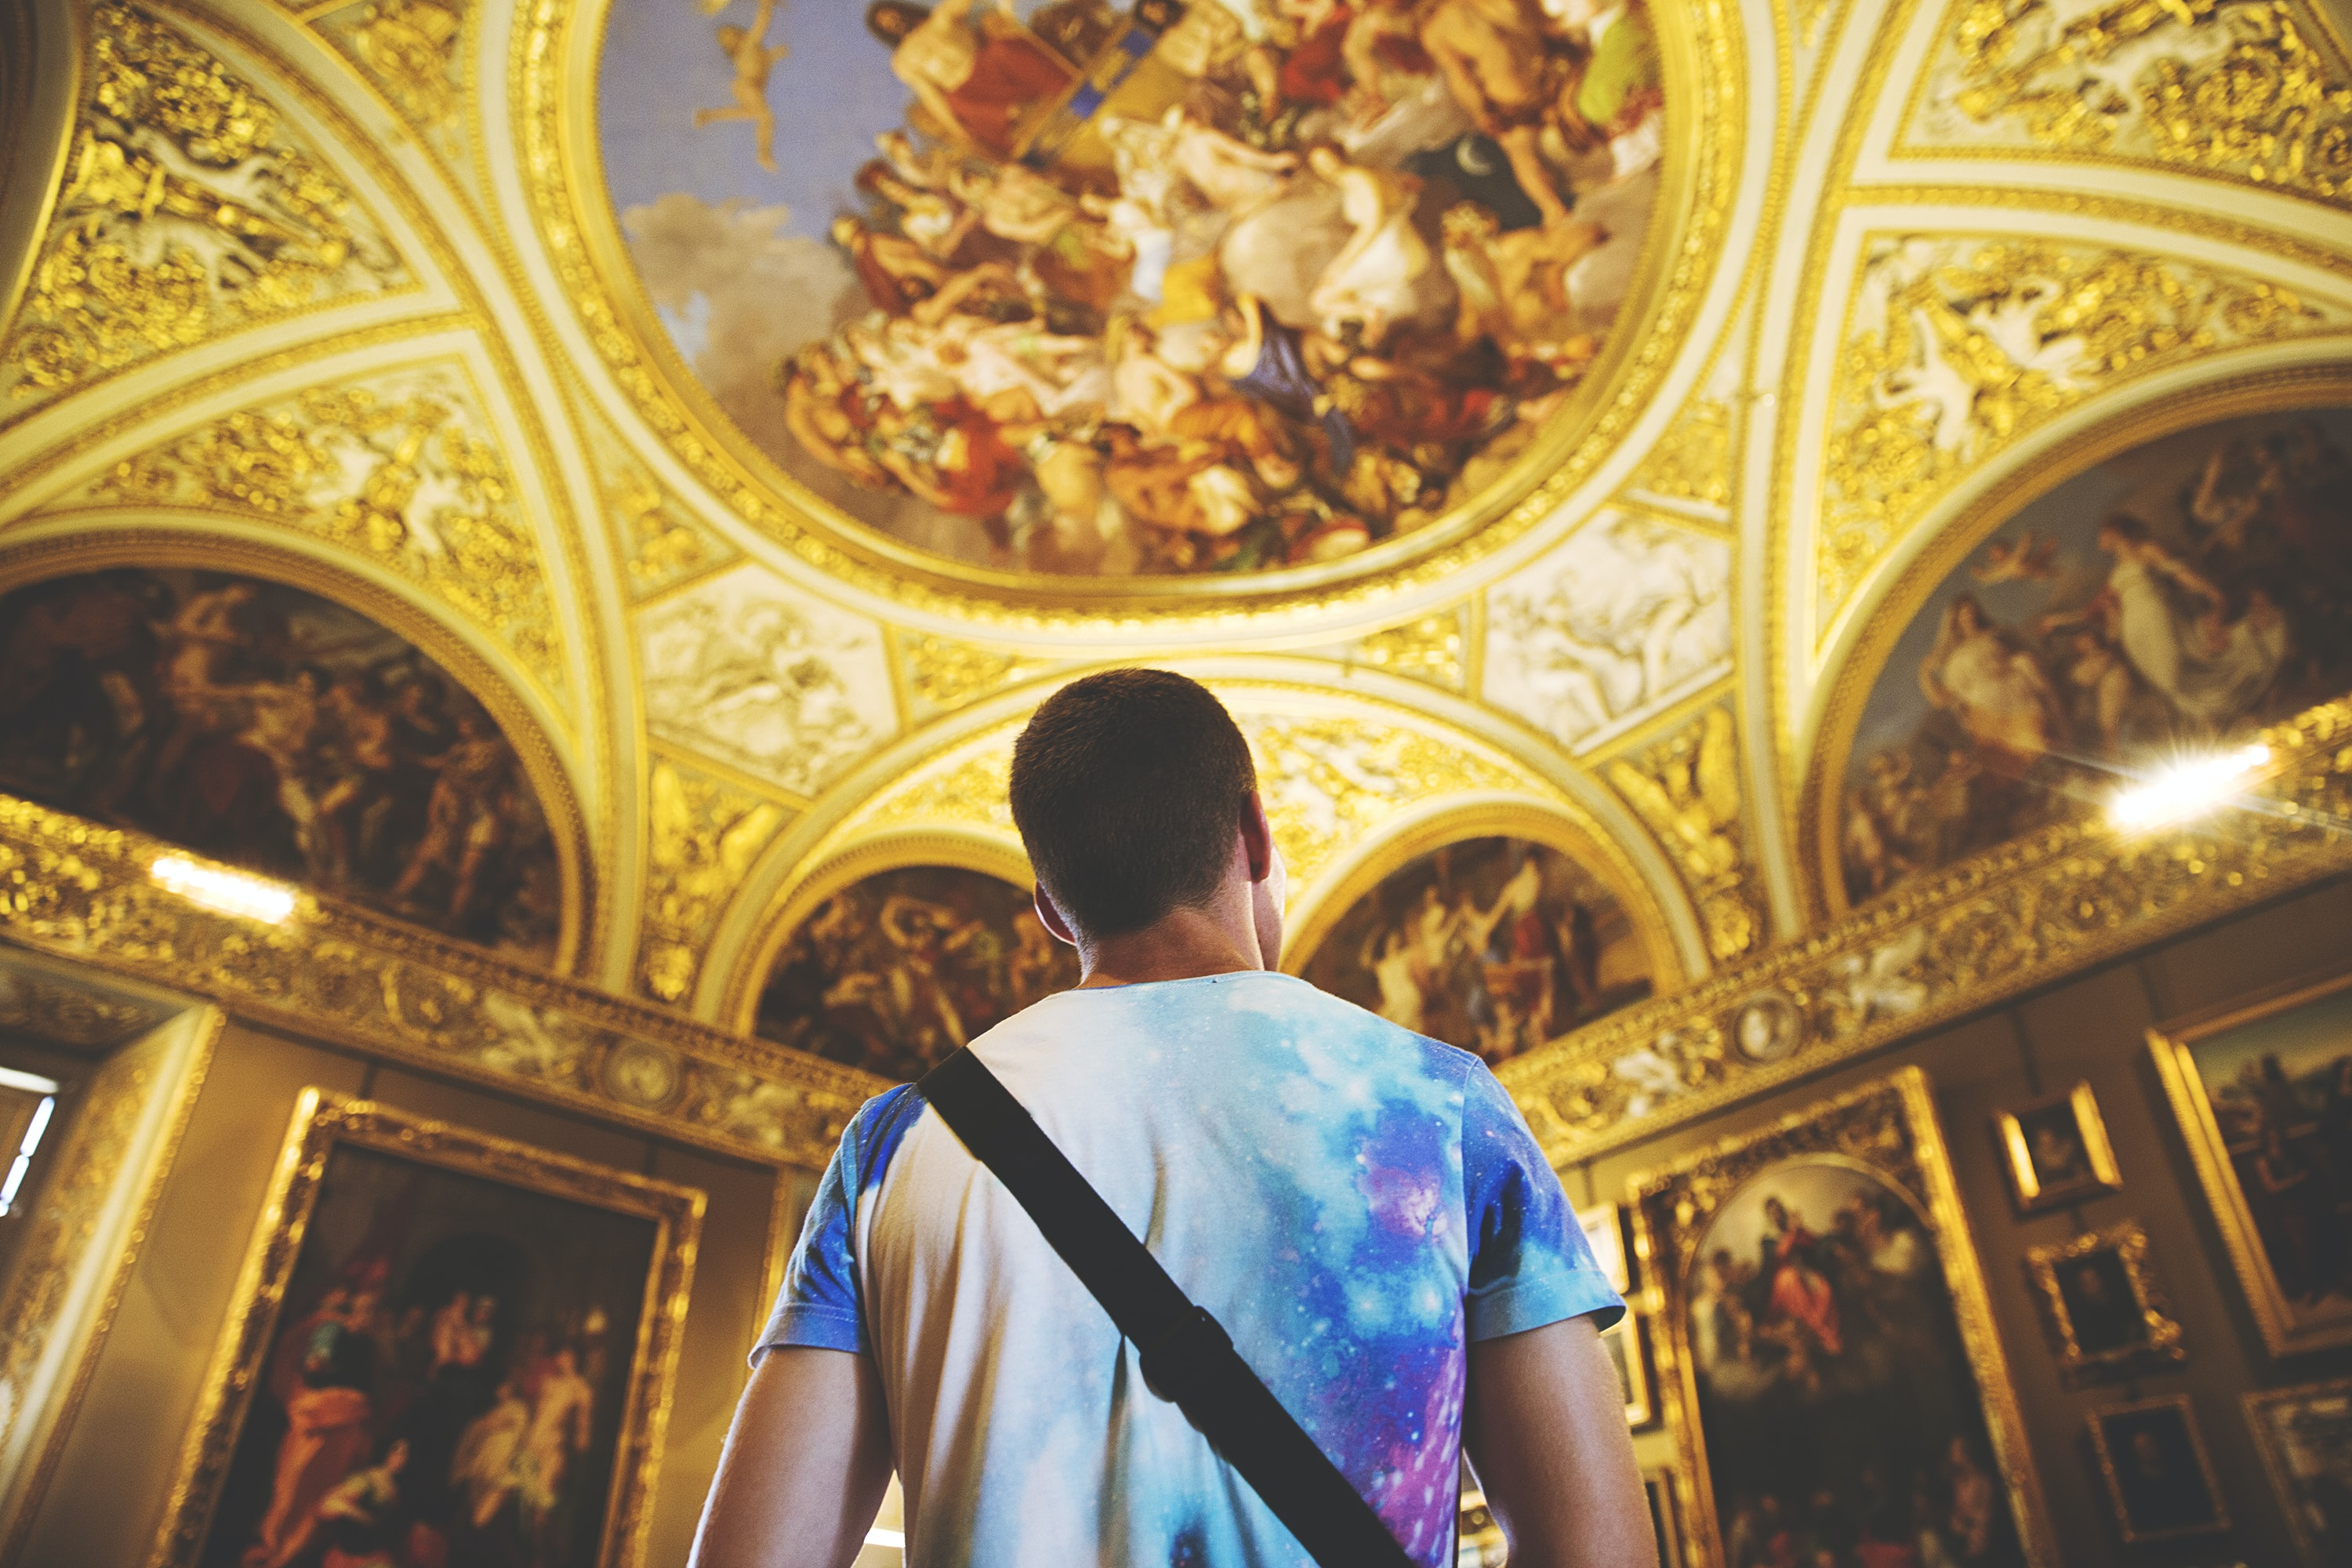 Man in multicolored tie dye t shirt looking at ornate, religious gold ceiling architecture in Florence